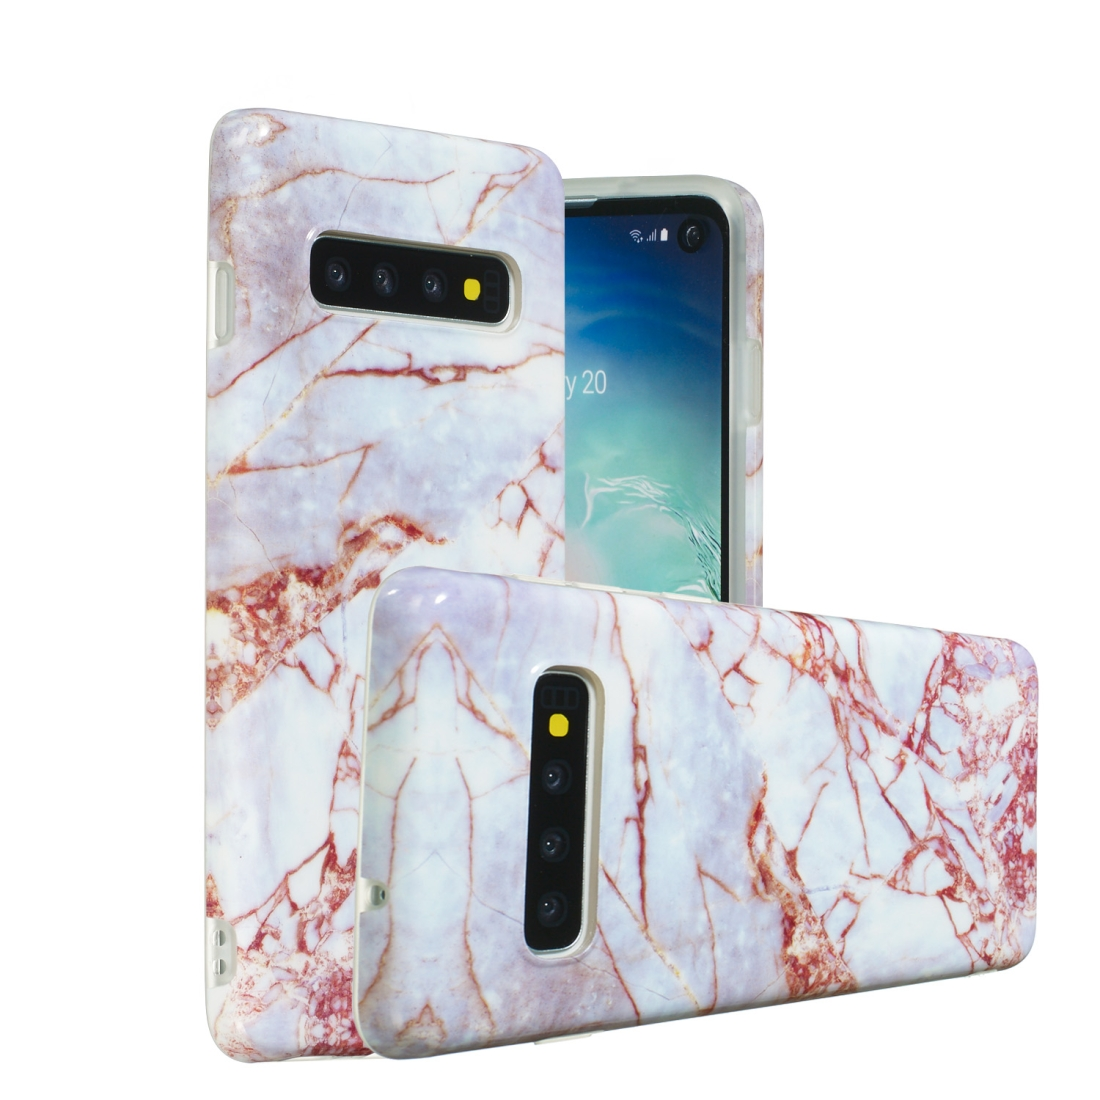 TPU Protective Case For Galaxy S10 (Gravel)